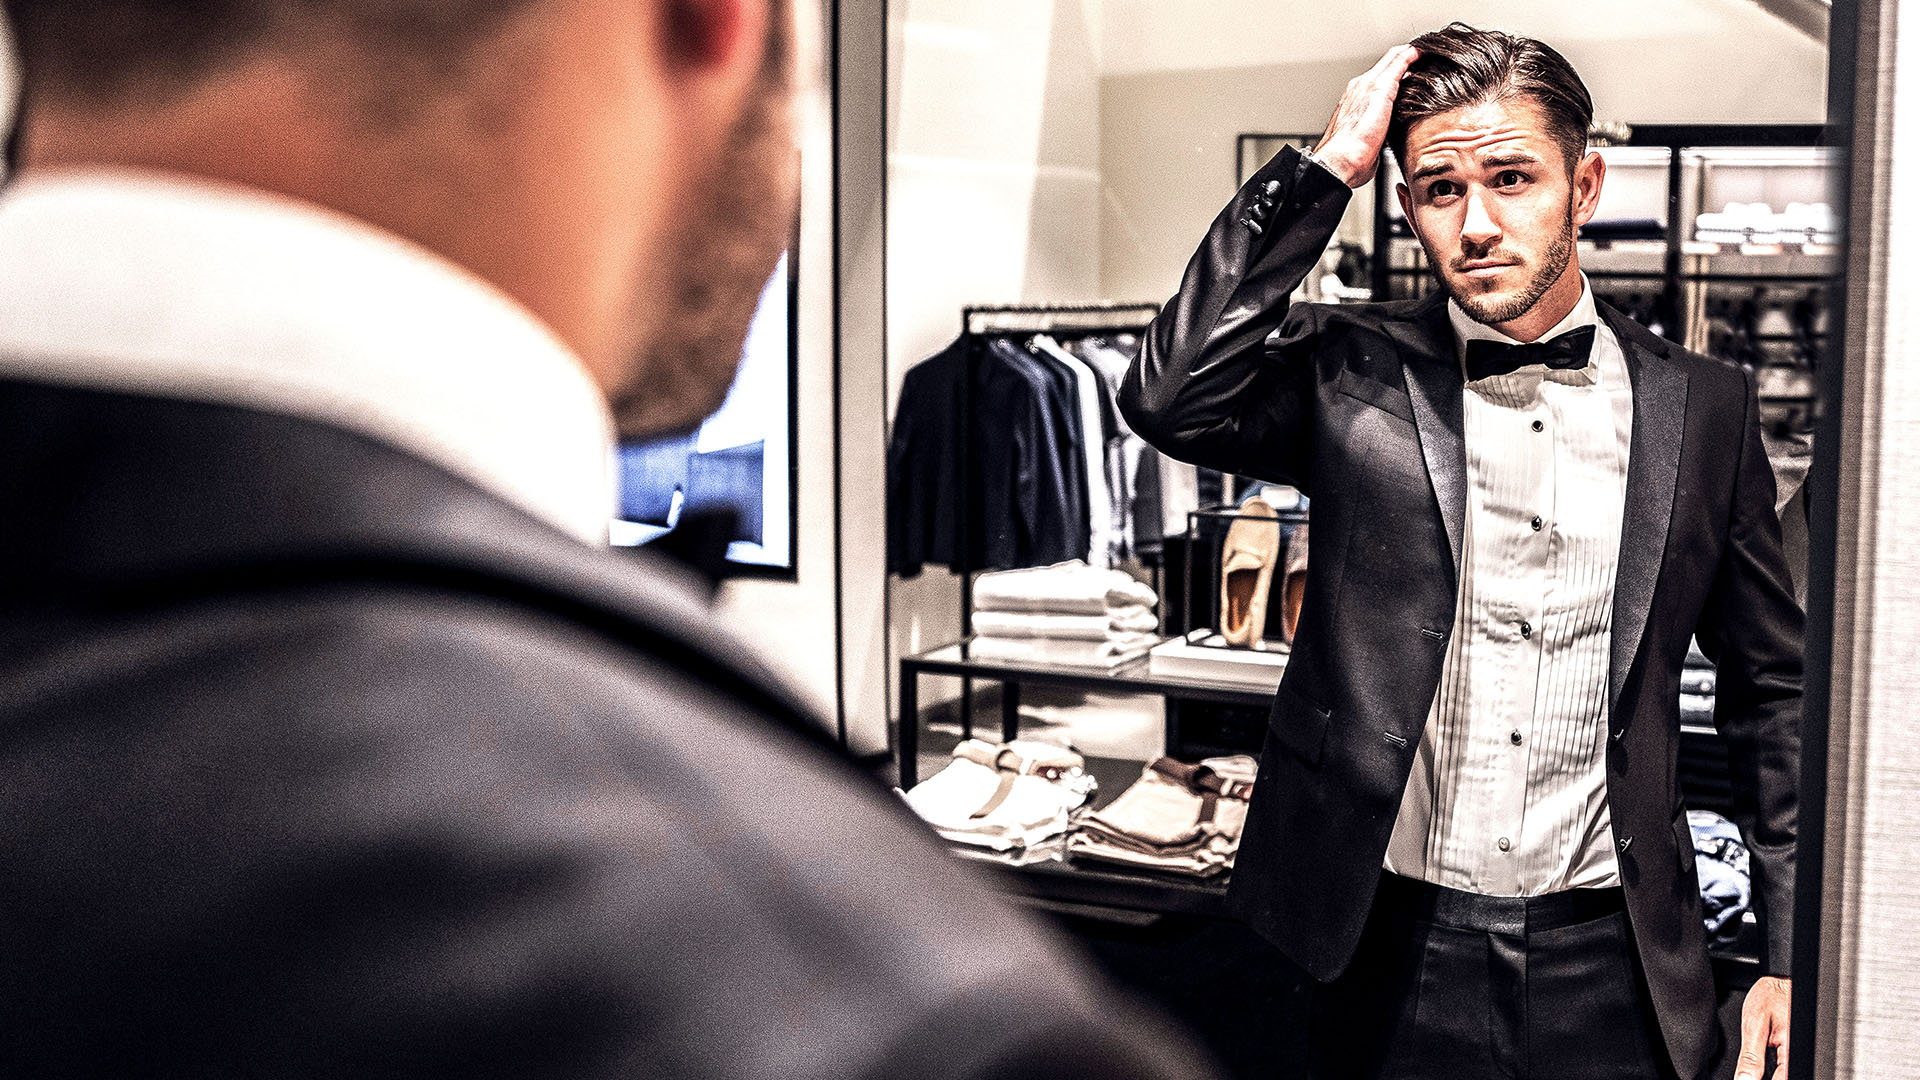 Daniel Abt trying on a suit